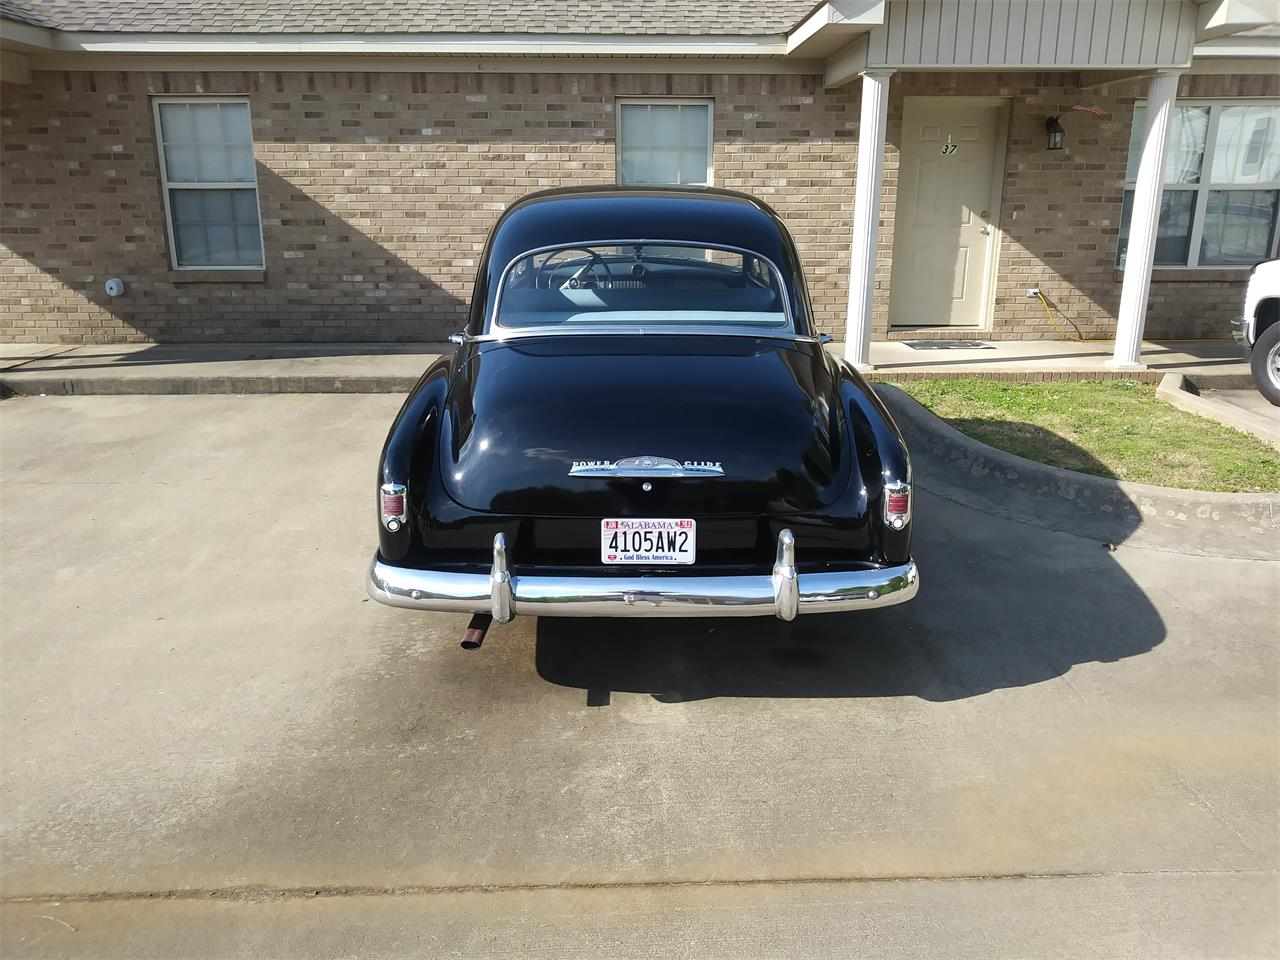 1952 Chevrolet Deluxe (CC-1140780) for sale in Florence, Alabama